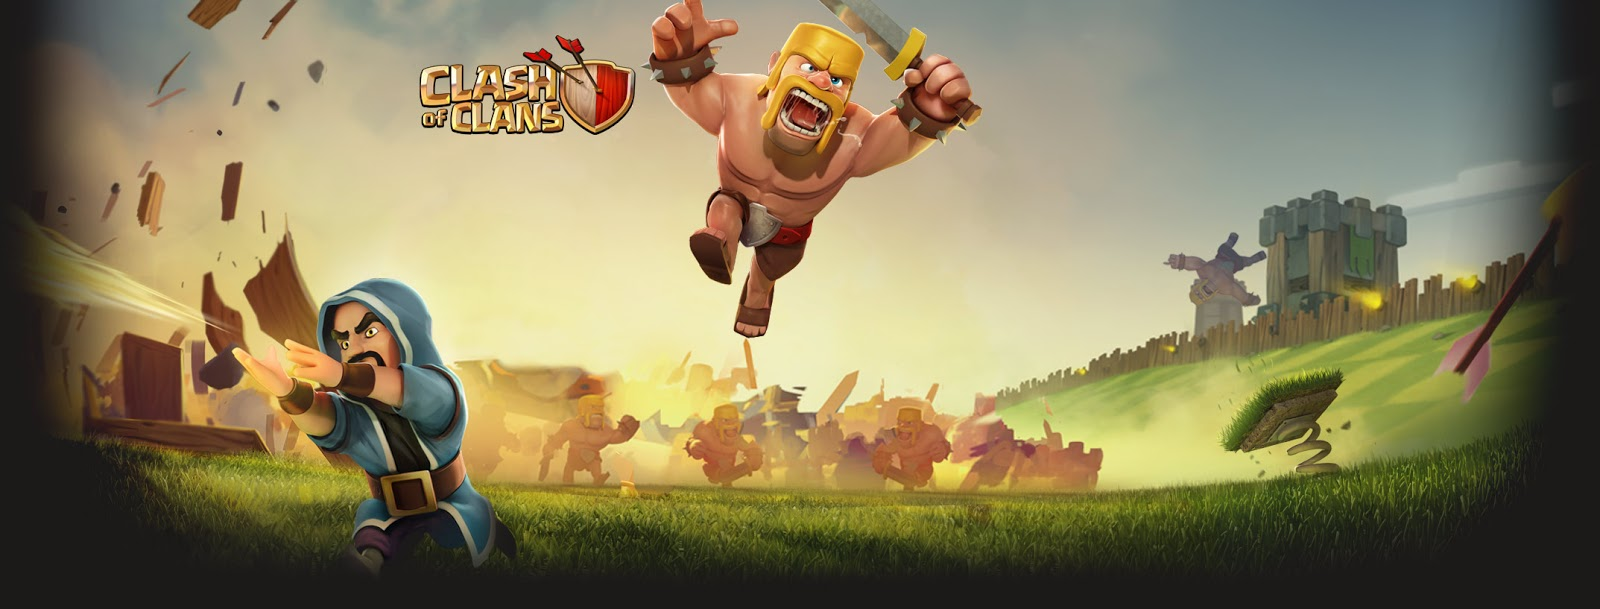 Barbarian Clash Of Clans Hd Hd Games 4k Wallpapers: Clash Of Clans Barbarian Wallpaper For Facebook